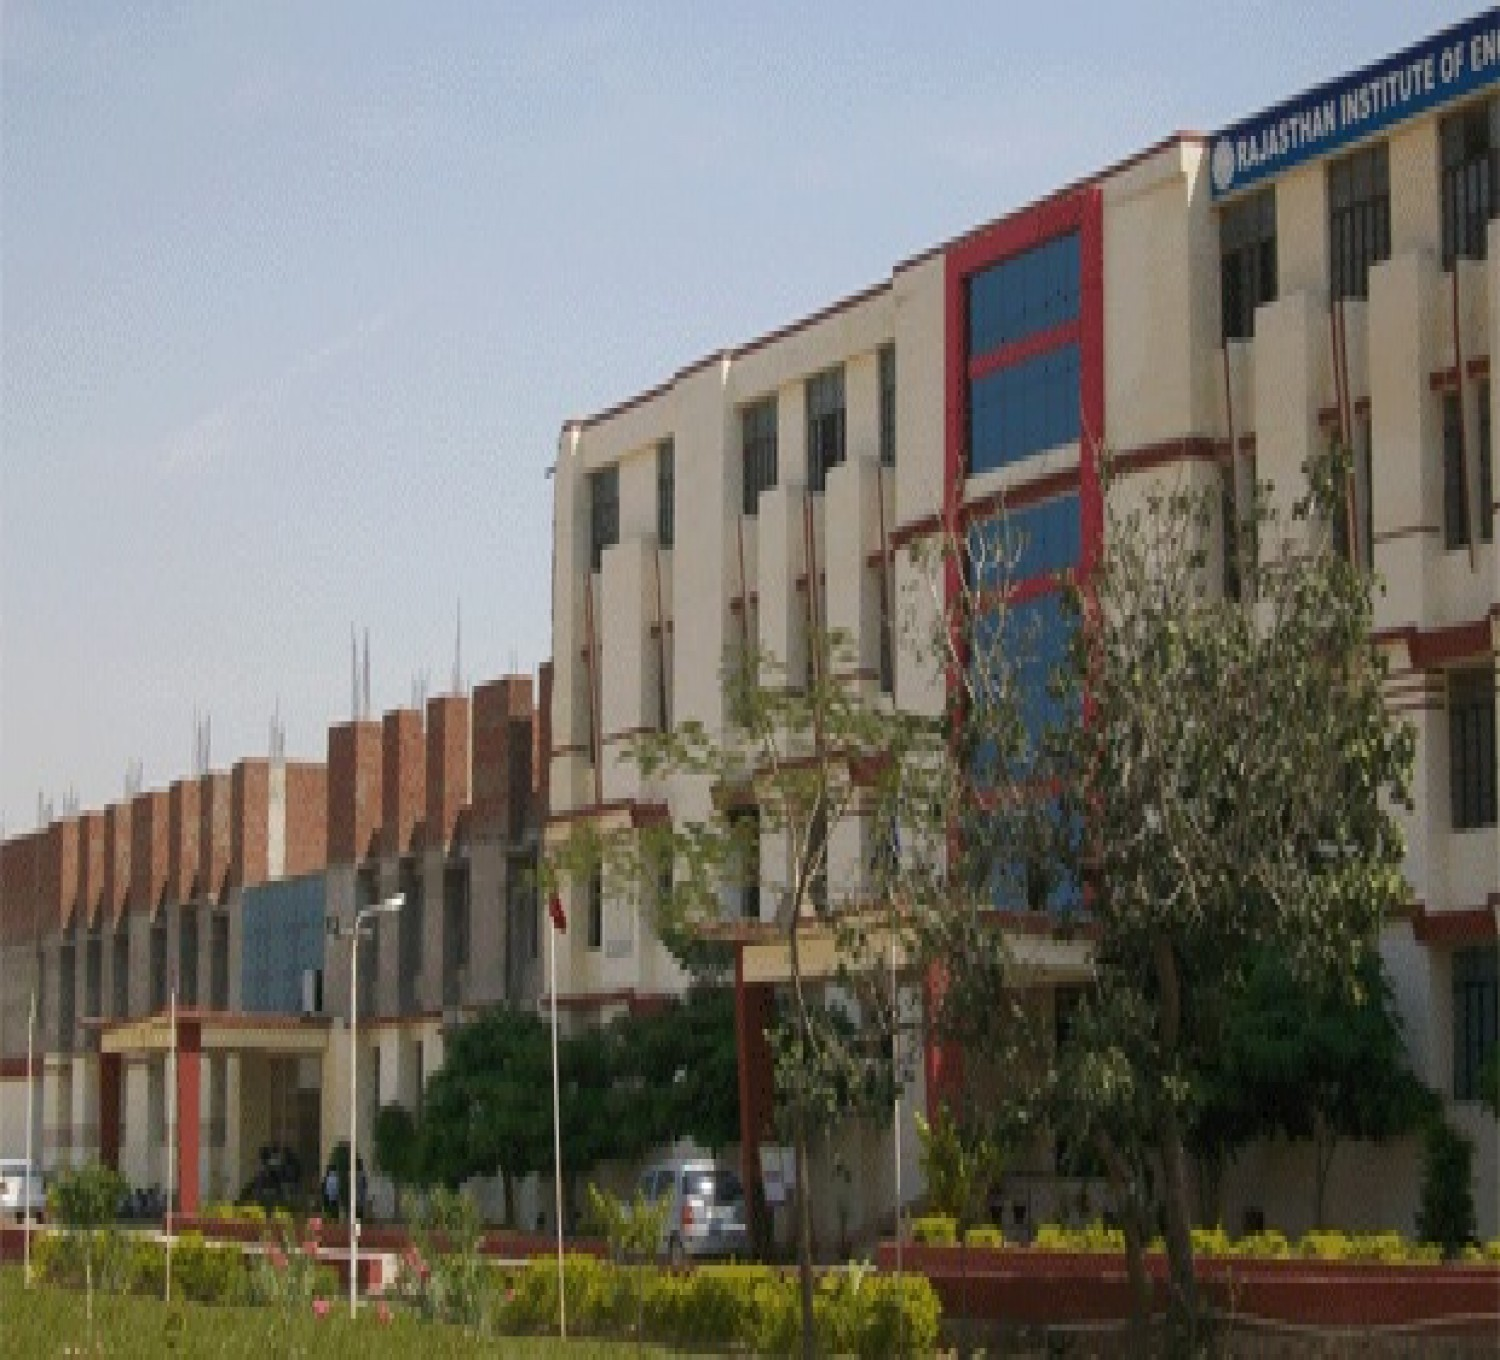 Rajasthan Institute Of Engineering And Technology-cover